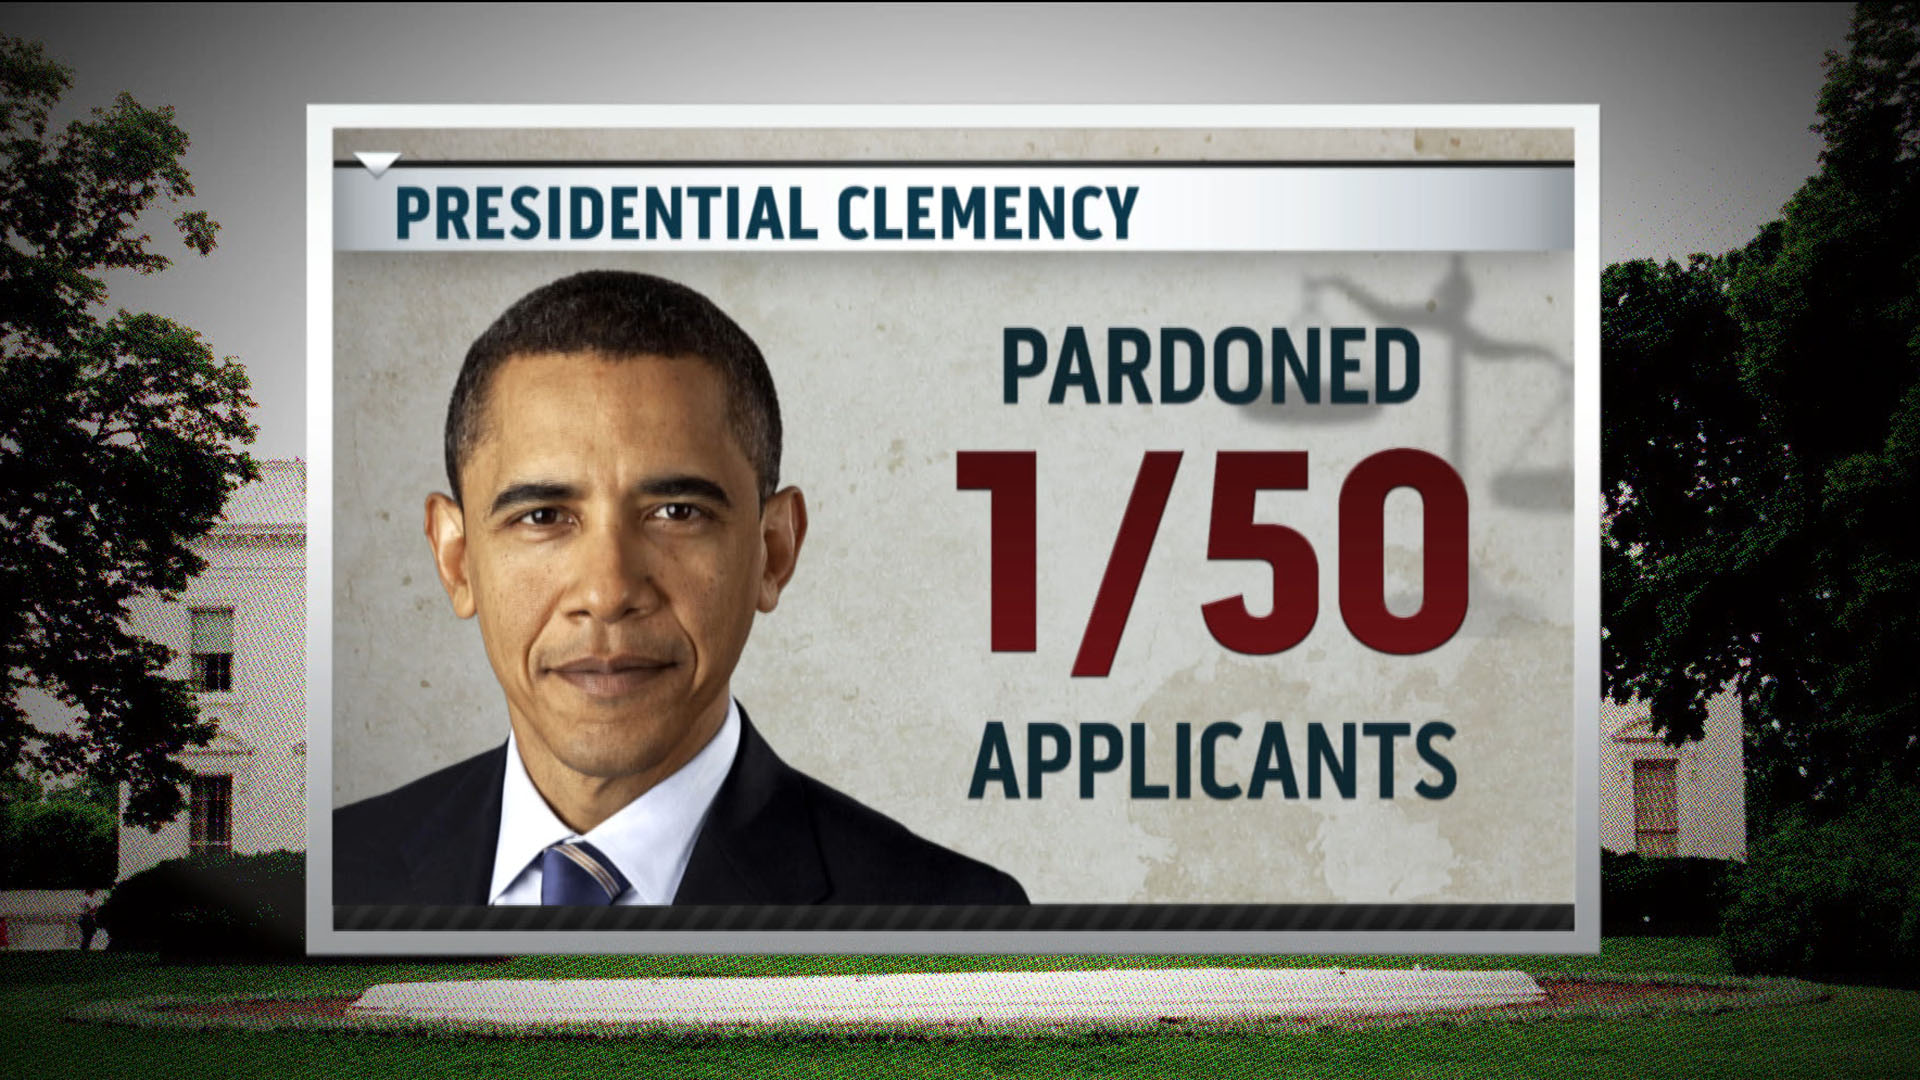 Presumed Guilty—the power of the pardon